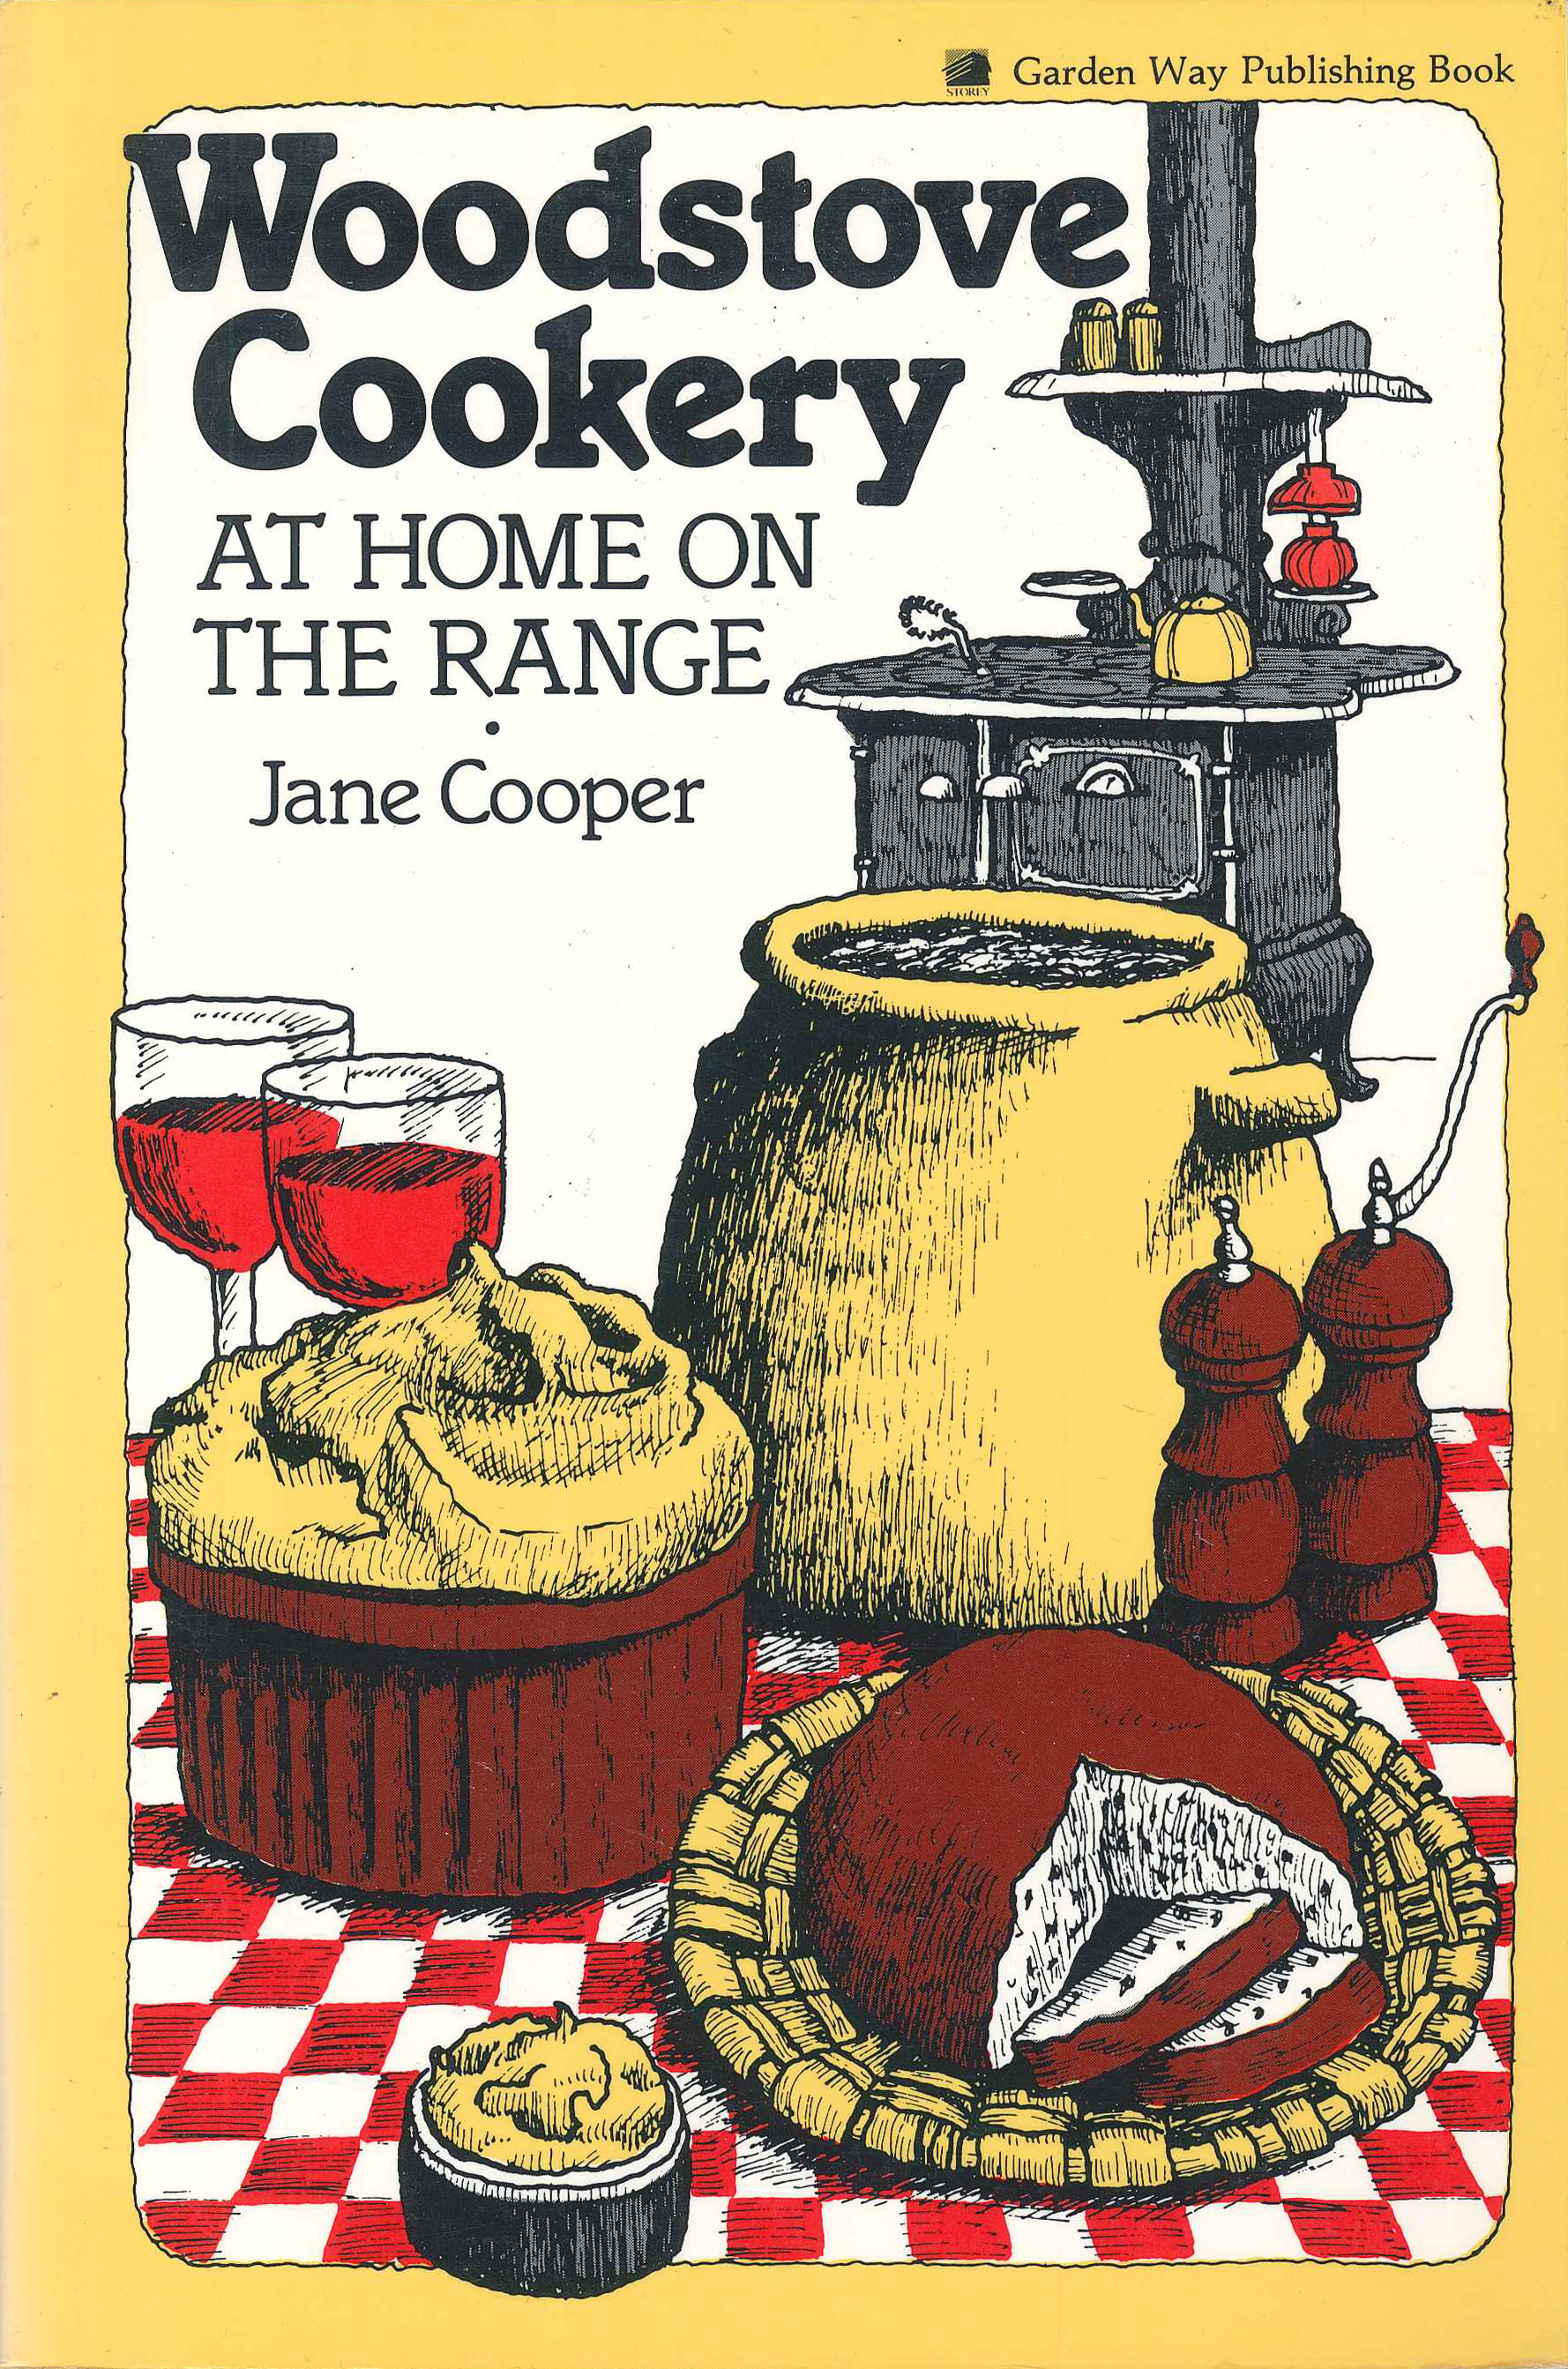 Woodstove Cookery At Home on the Range - Jane Cooper